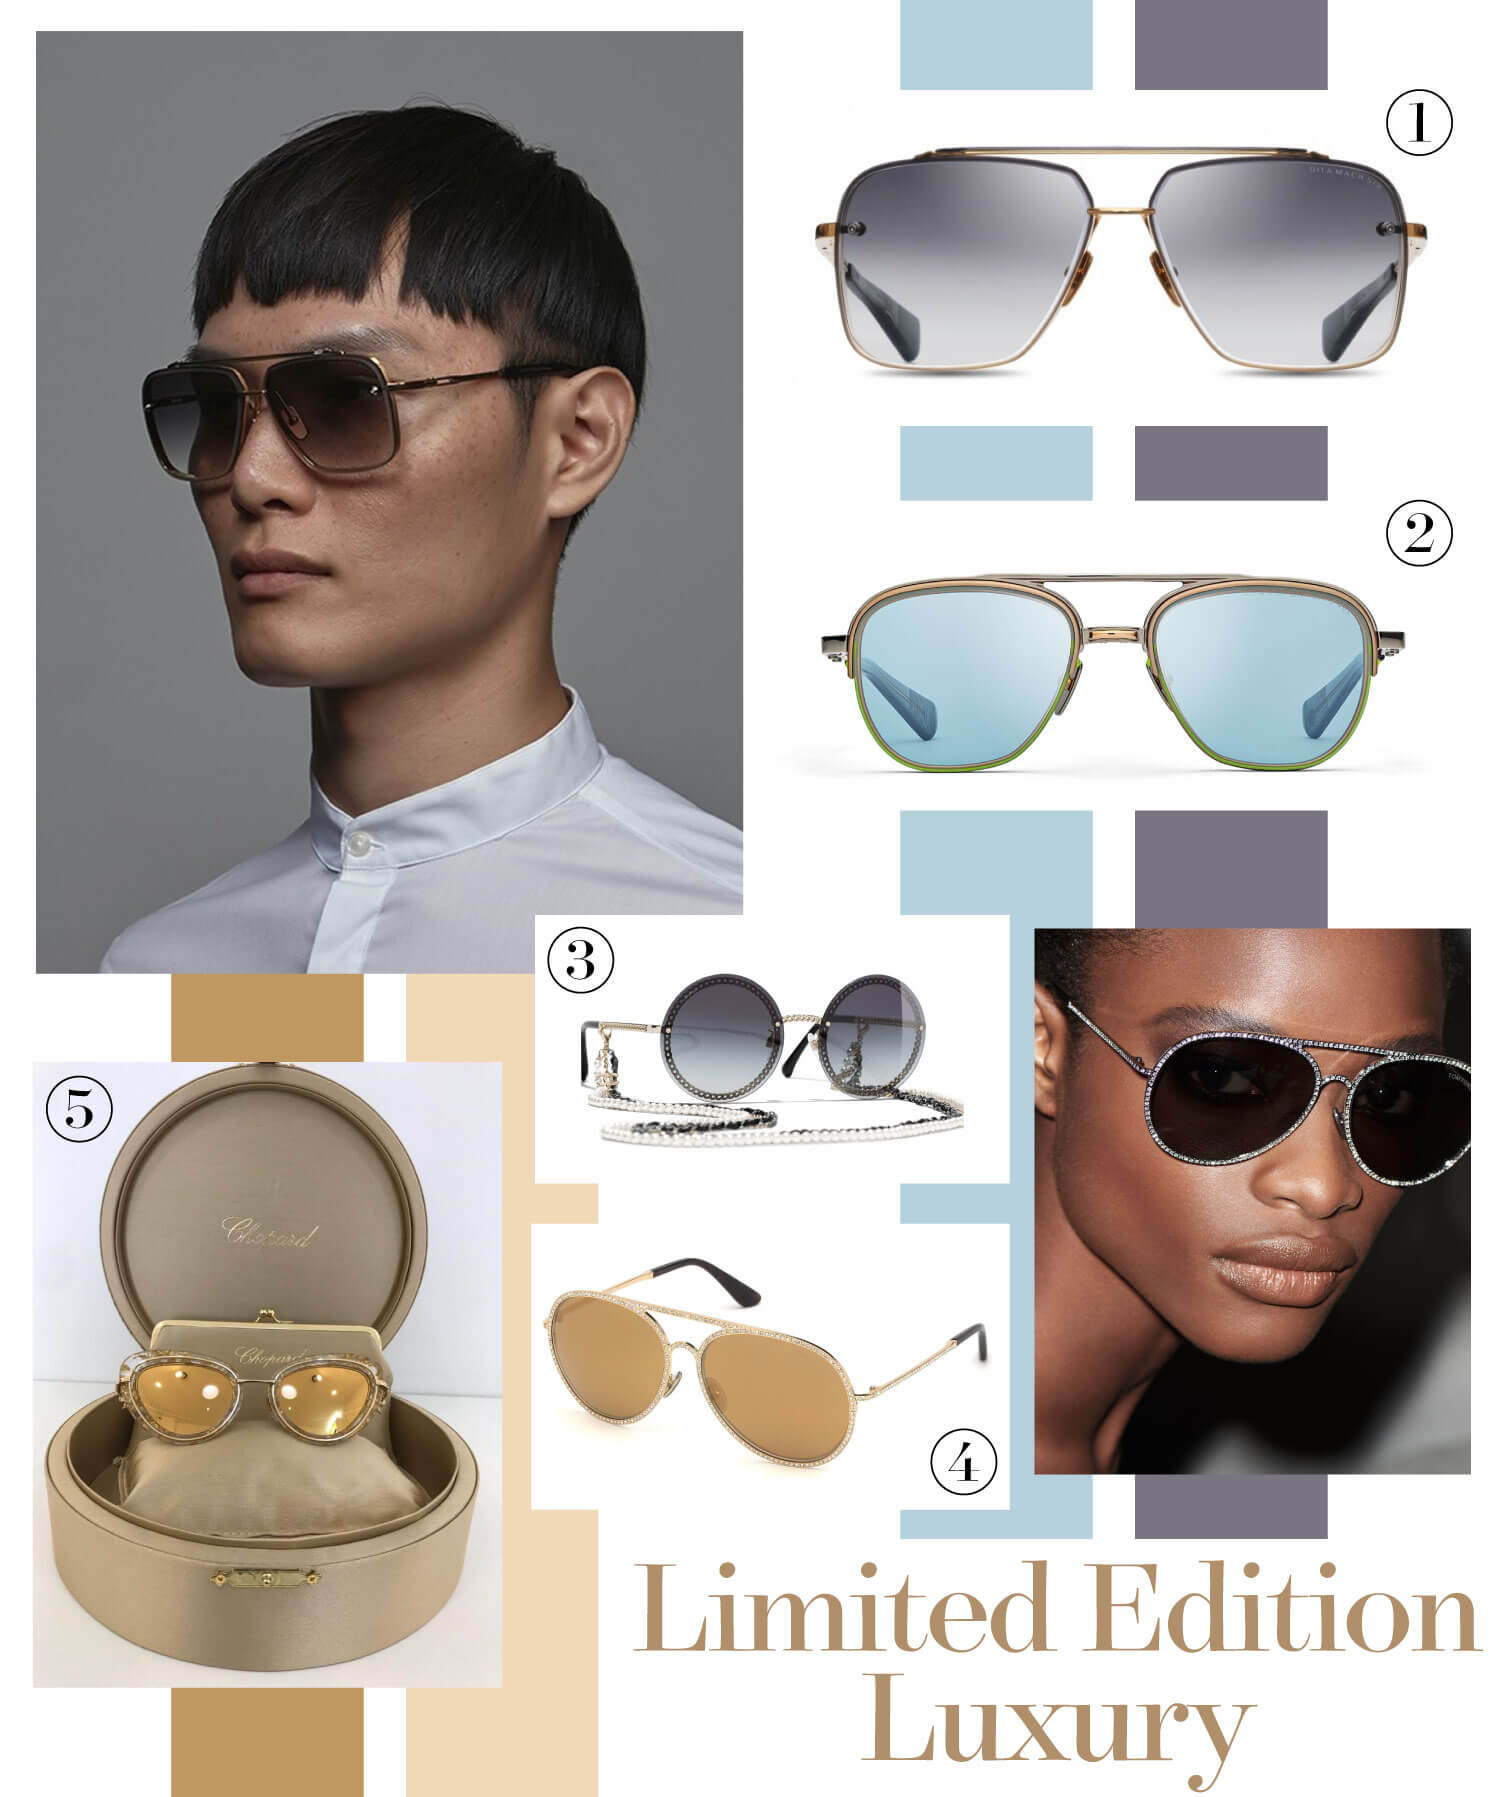 Eyesite-SS-Style-Guide_Limited-edition-luxury.jpg